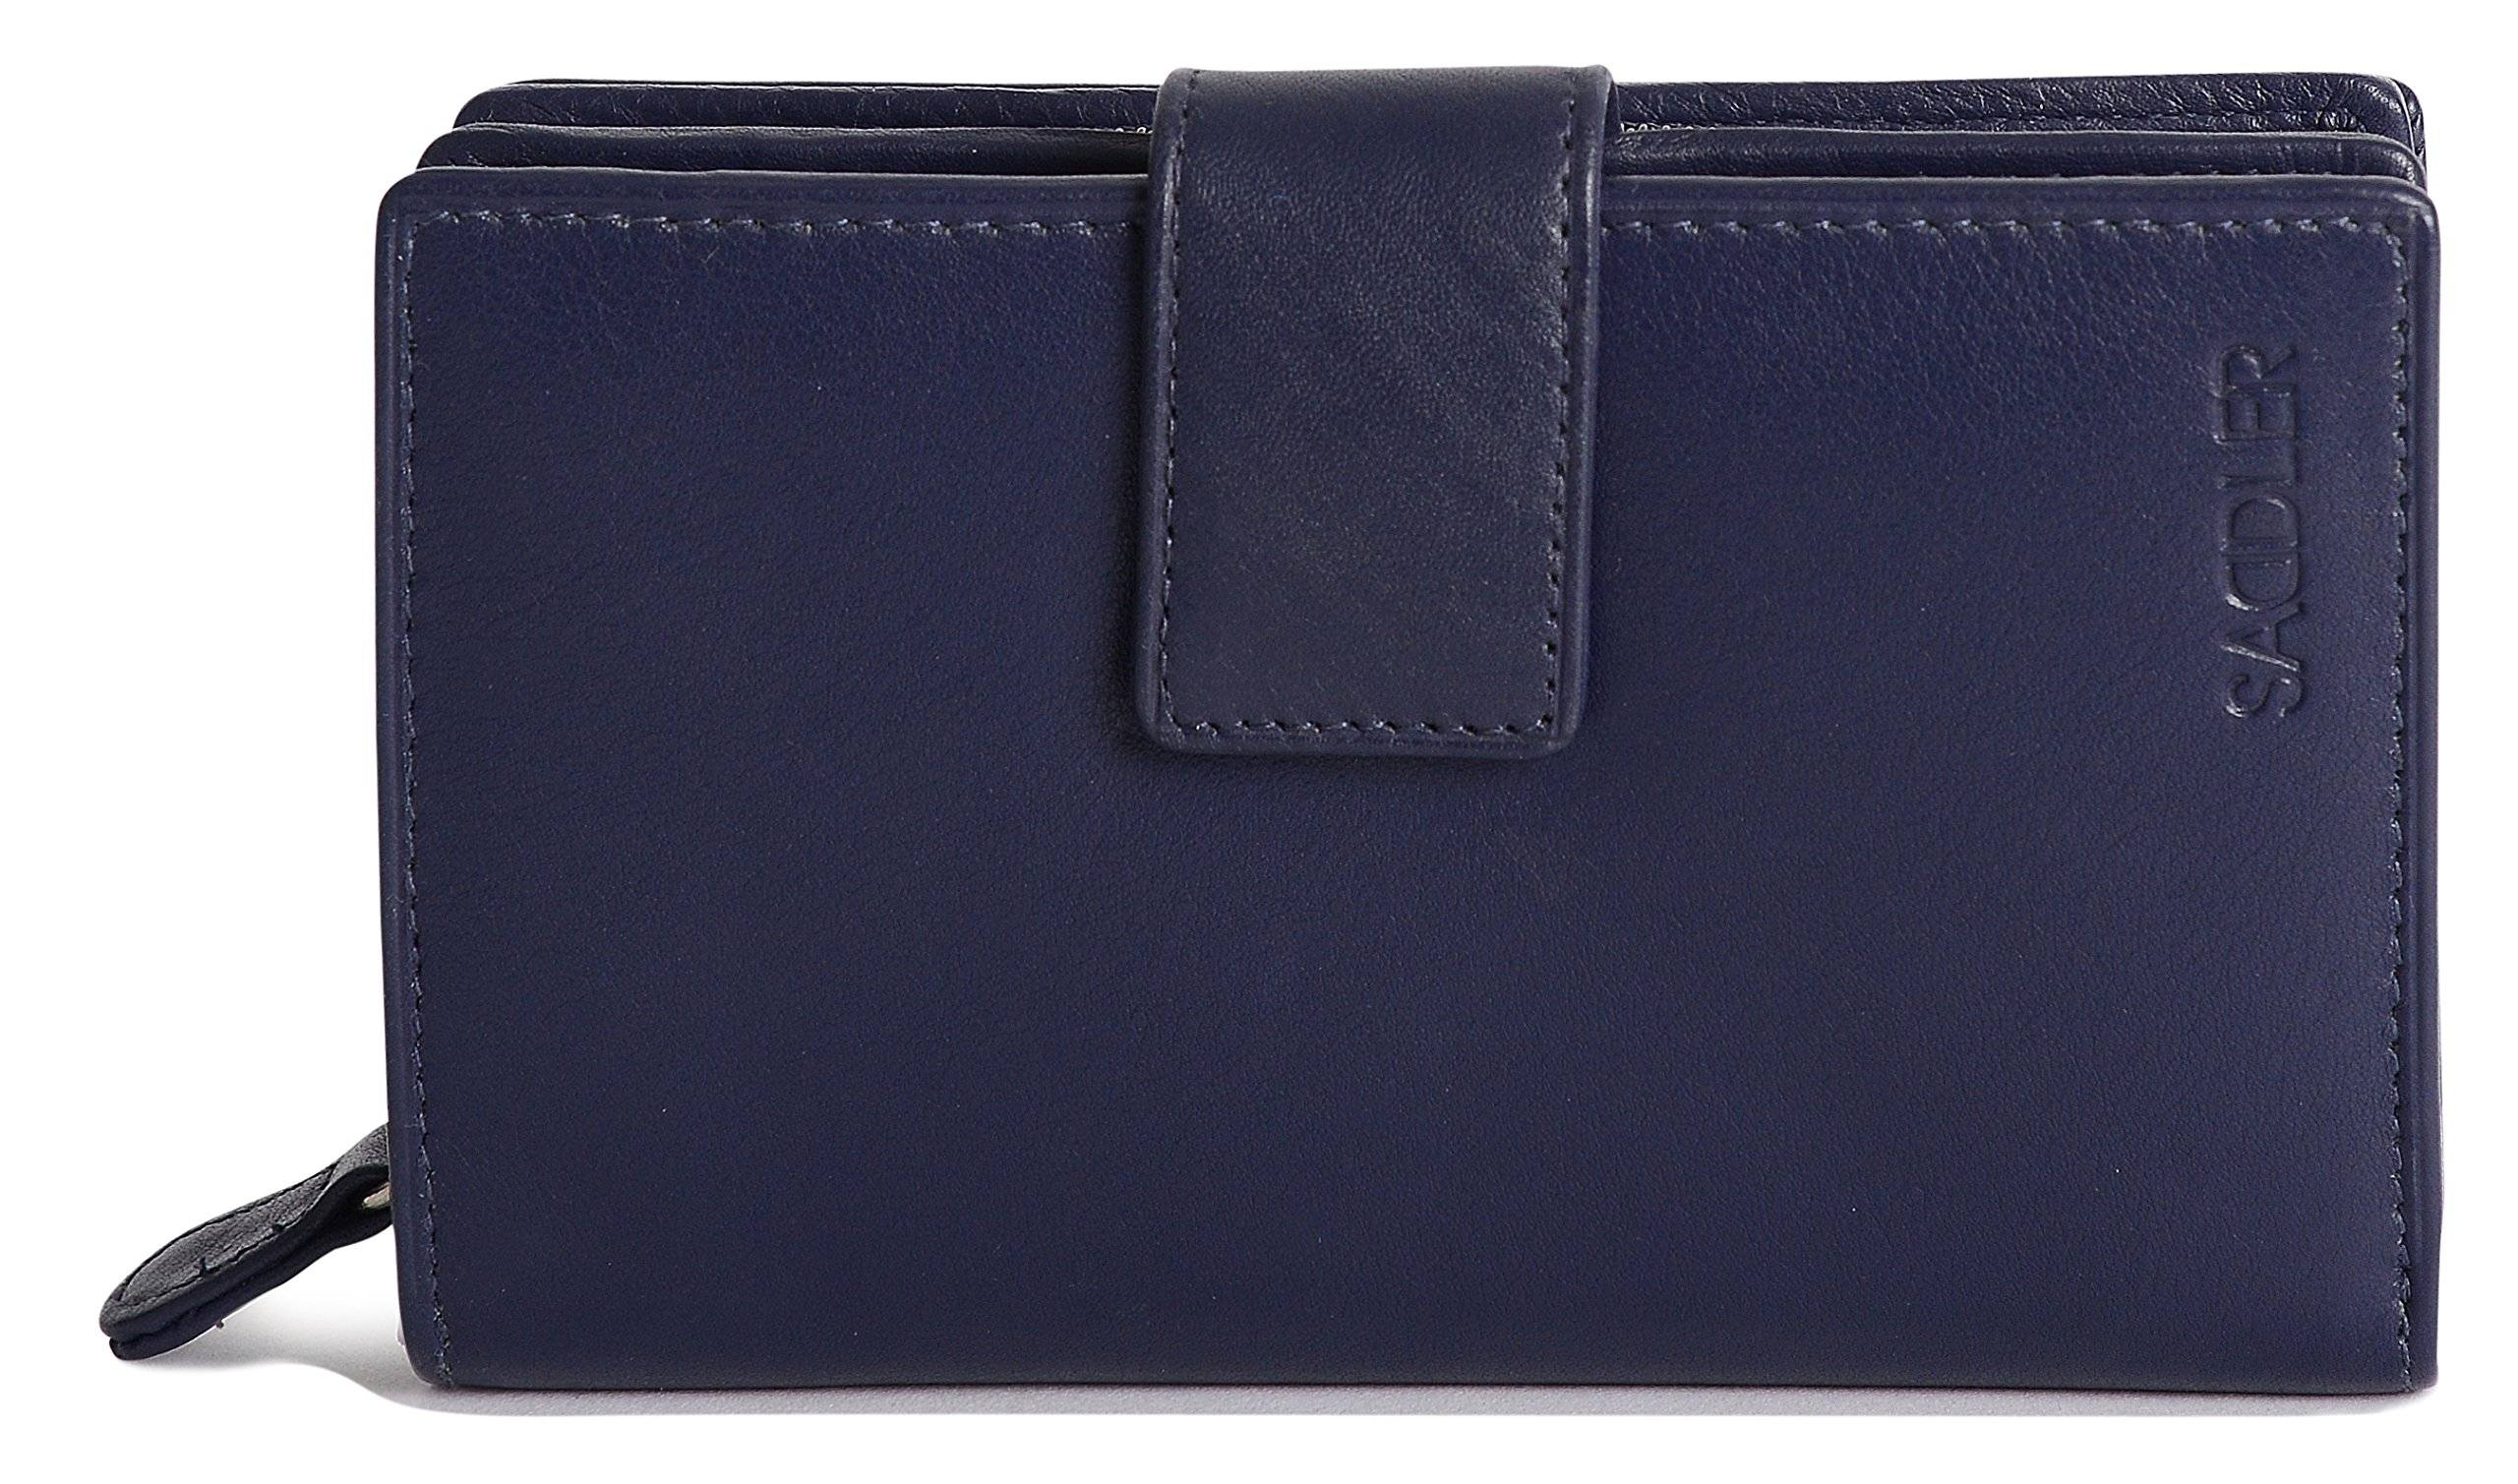 SADDLER Womens Leather High Volume Womens Tab Wallet Zipper Purse - Peacoat Blue by Saddler (Image #2)